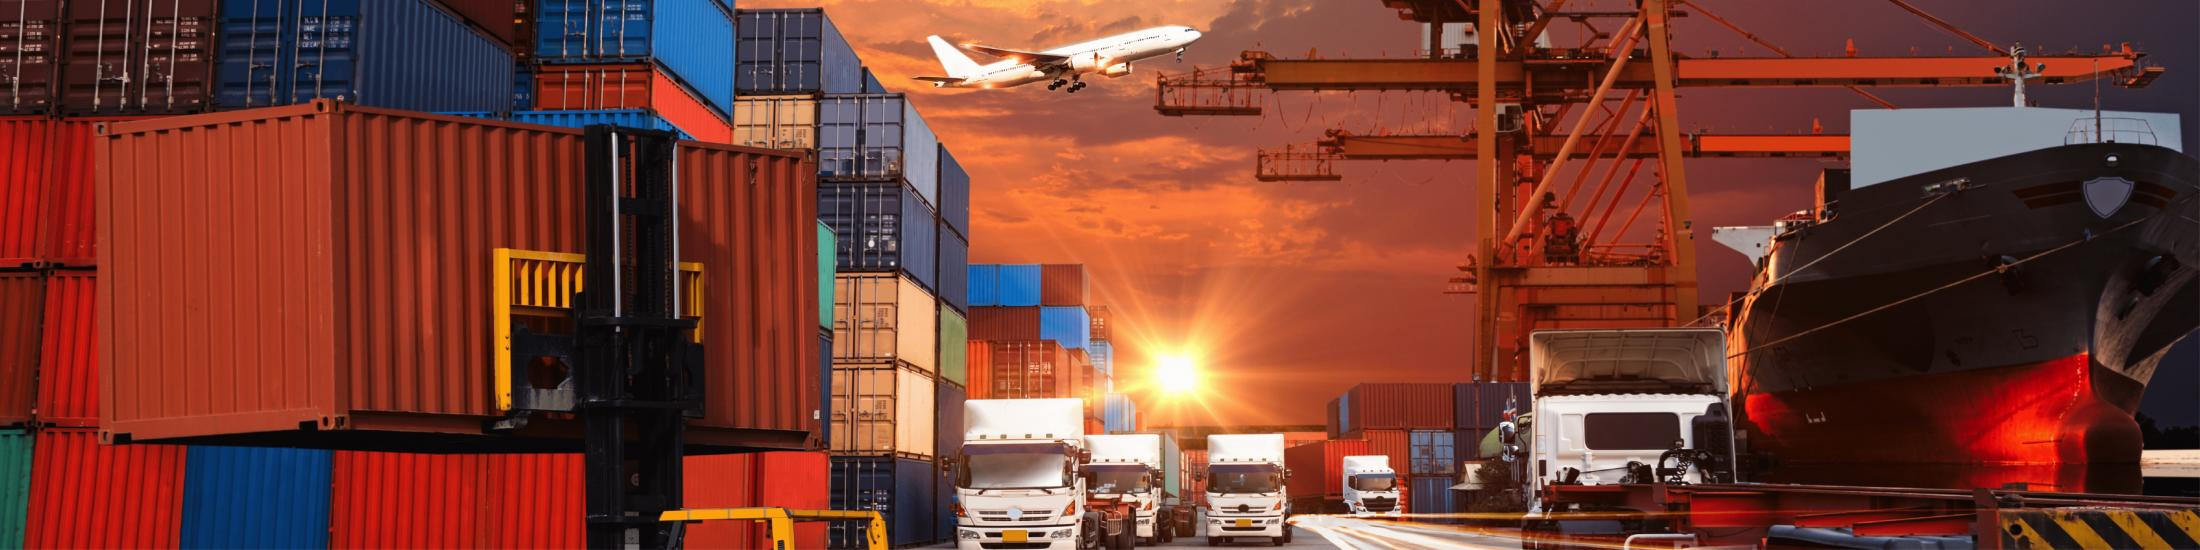 Shipping containers, delivery trucks, airplane, and shipping boat with orange dusk/dawn sky